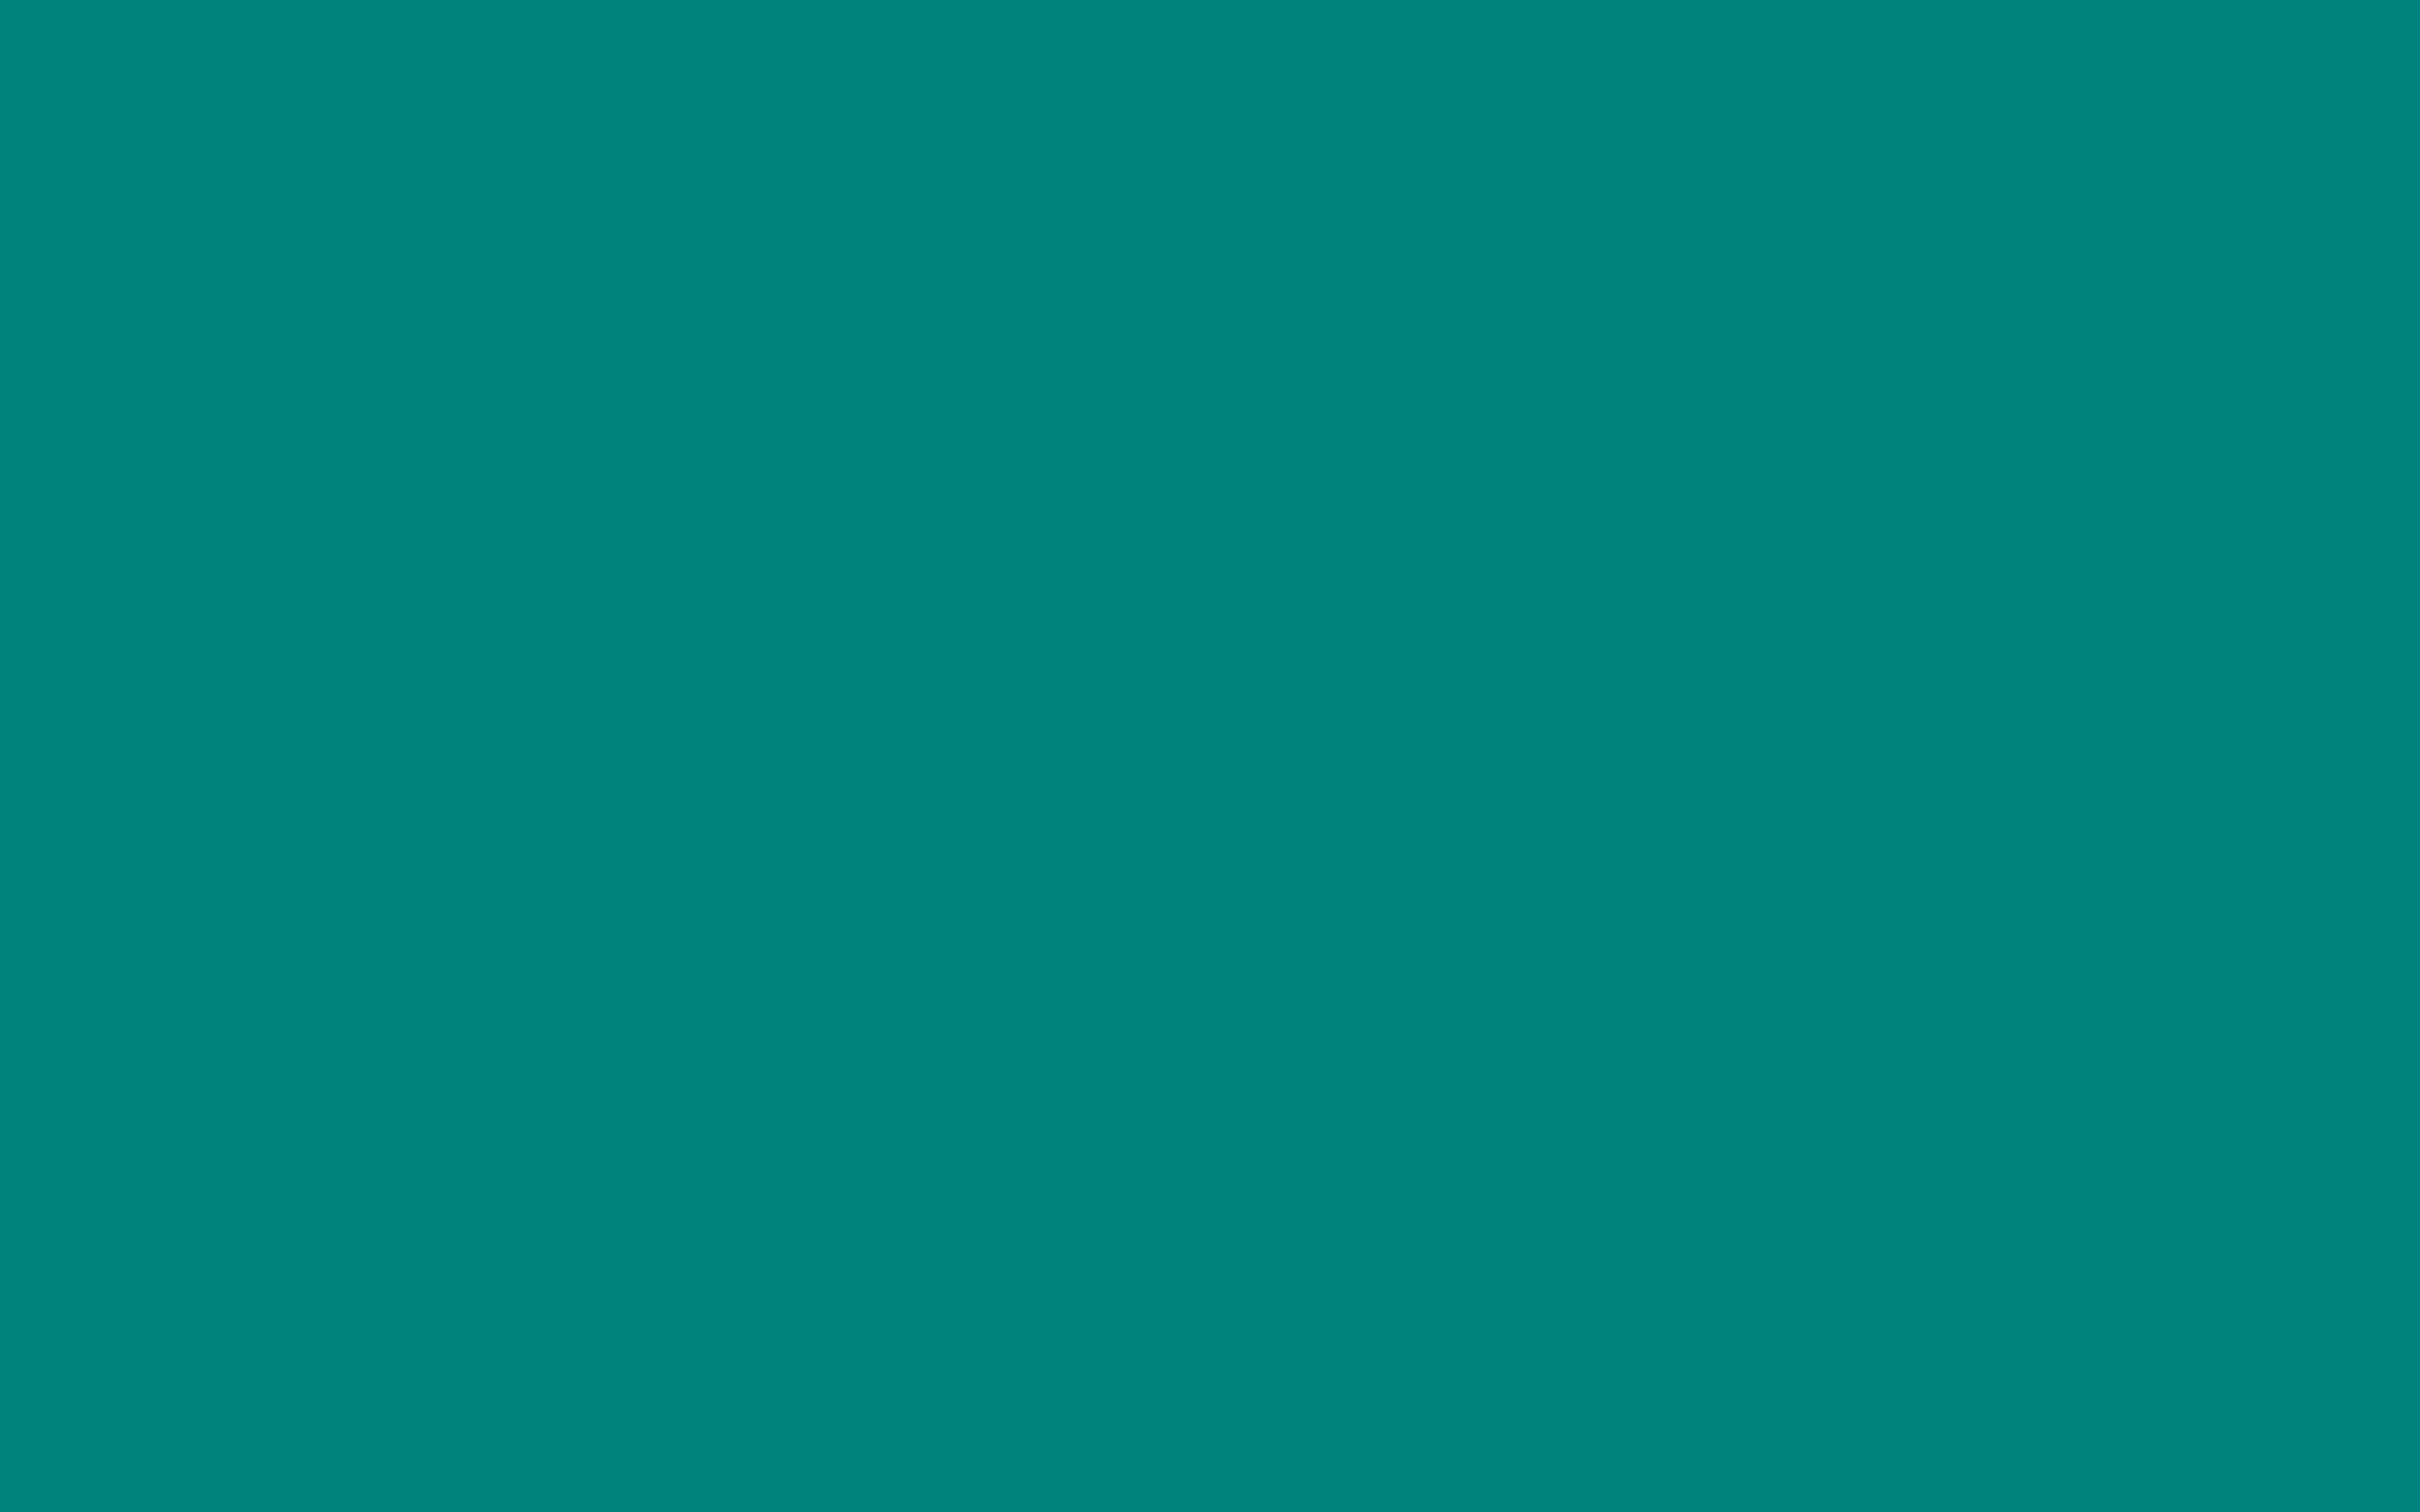 2560x1600 Teal Green Solid Color Background